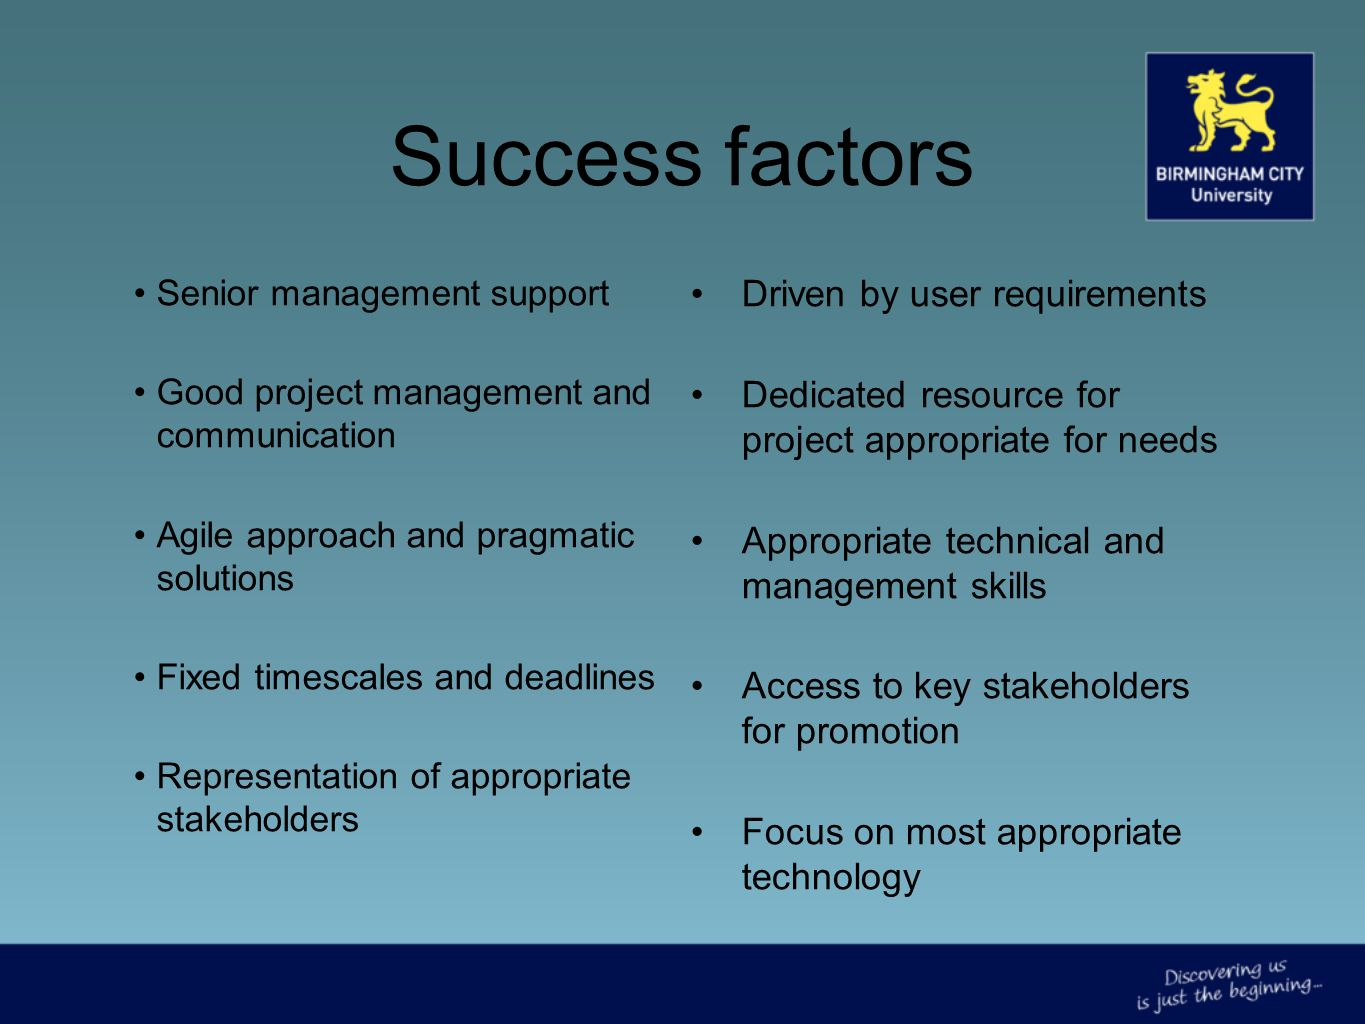 Success factors Senior management support Good project management and communication Agile approach and pragmatic solutions Fixed timescales and deadlines Representation of appropriate stakeholders Driven by user requirements Dedicated resource for project appropriate for needs Appropriate technical and management skills Access to key stakeholders for promotion Focus on most appropriate technology